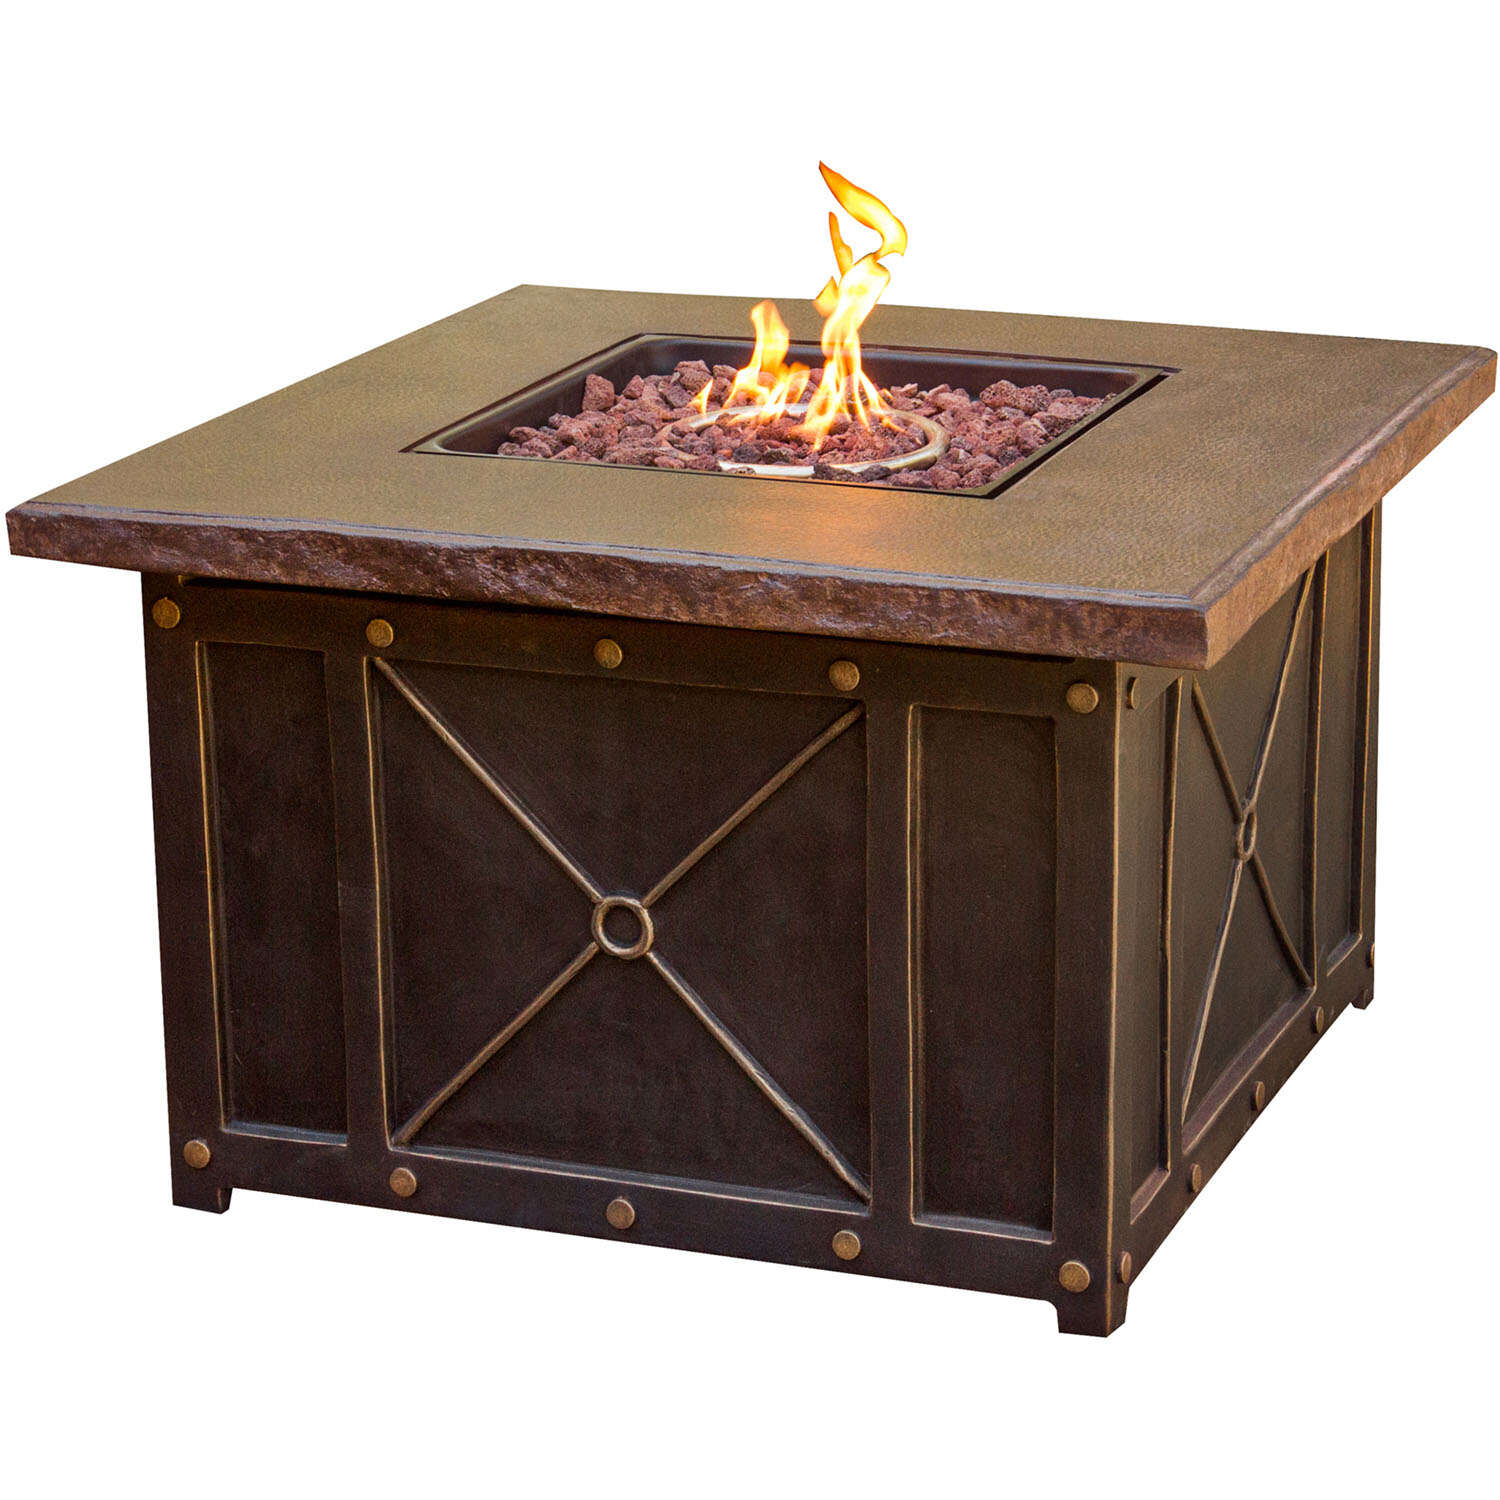 Hanover  Summer Nights  Propane  Fire Pit  23.62 in. H x 40 in. W x 40 in. D Aluminum